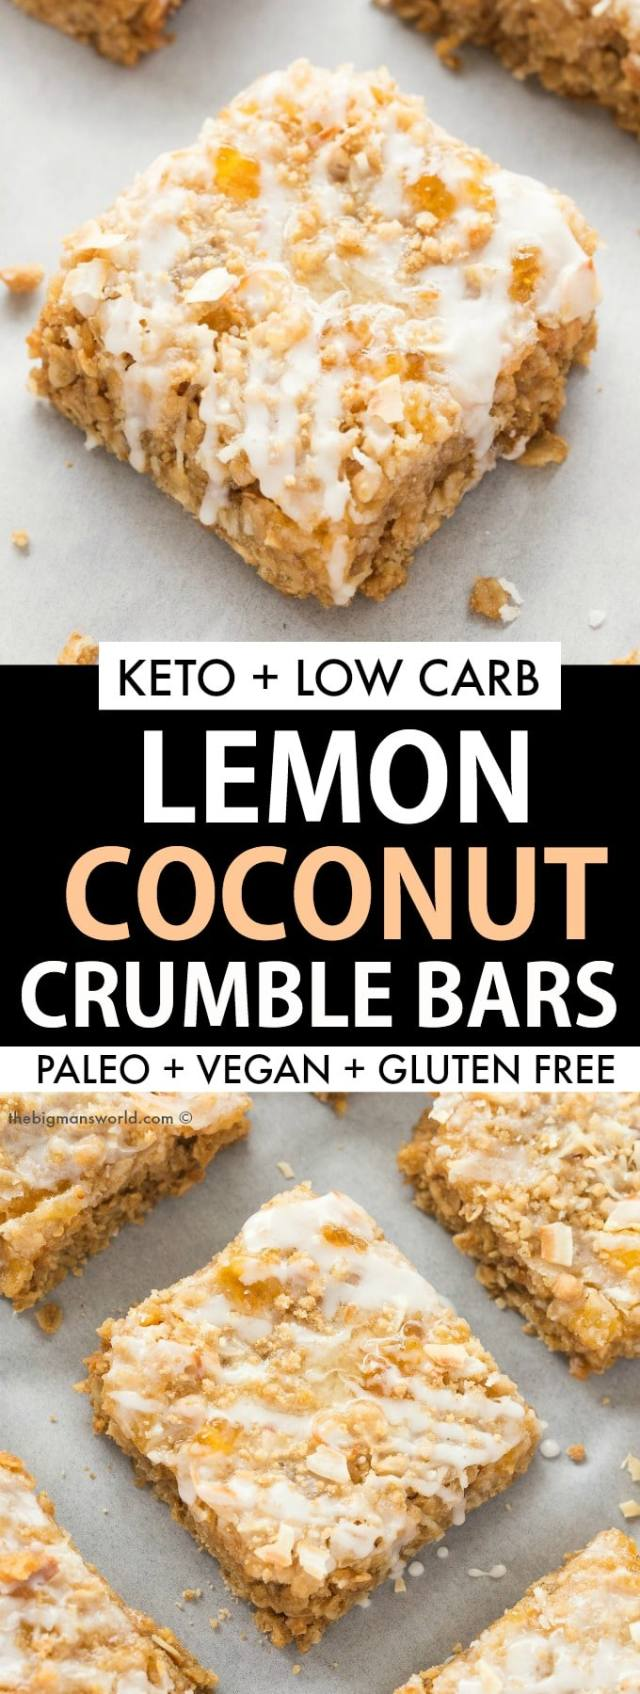 Keto Lemon Coconut Bars Recipe- Paleo and vegan friendly!